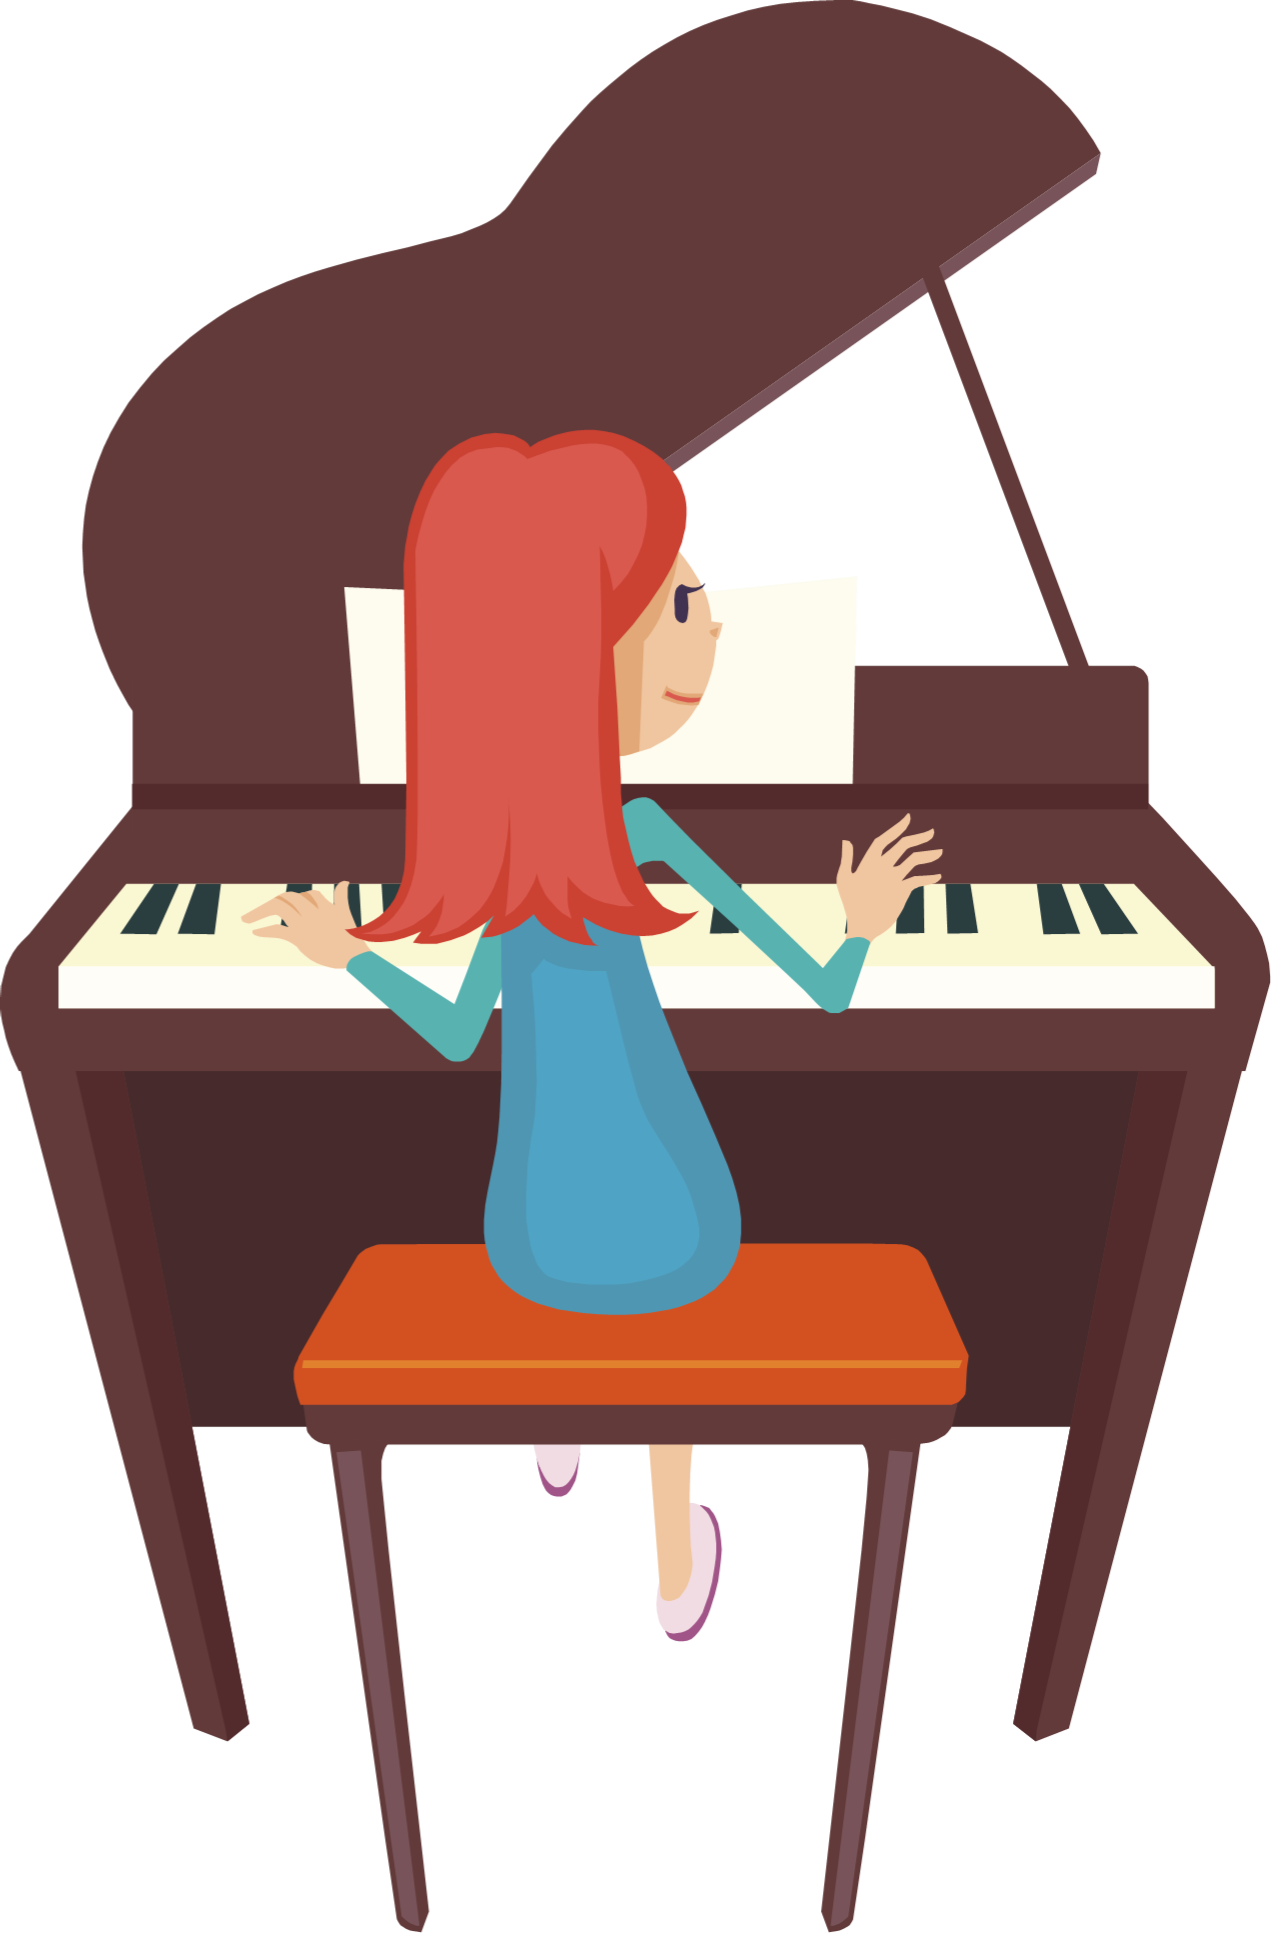 Piano lessons clipart.